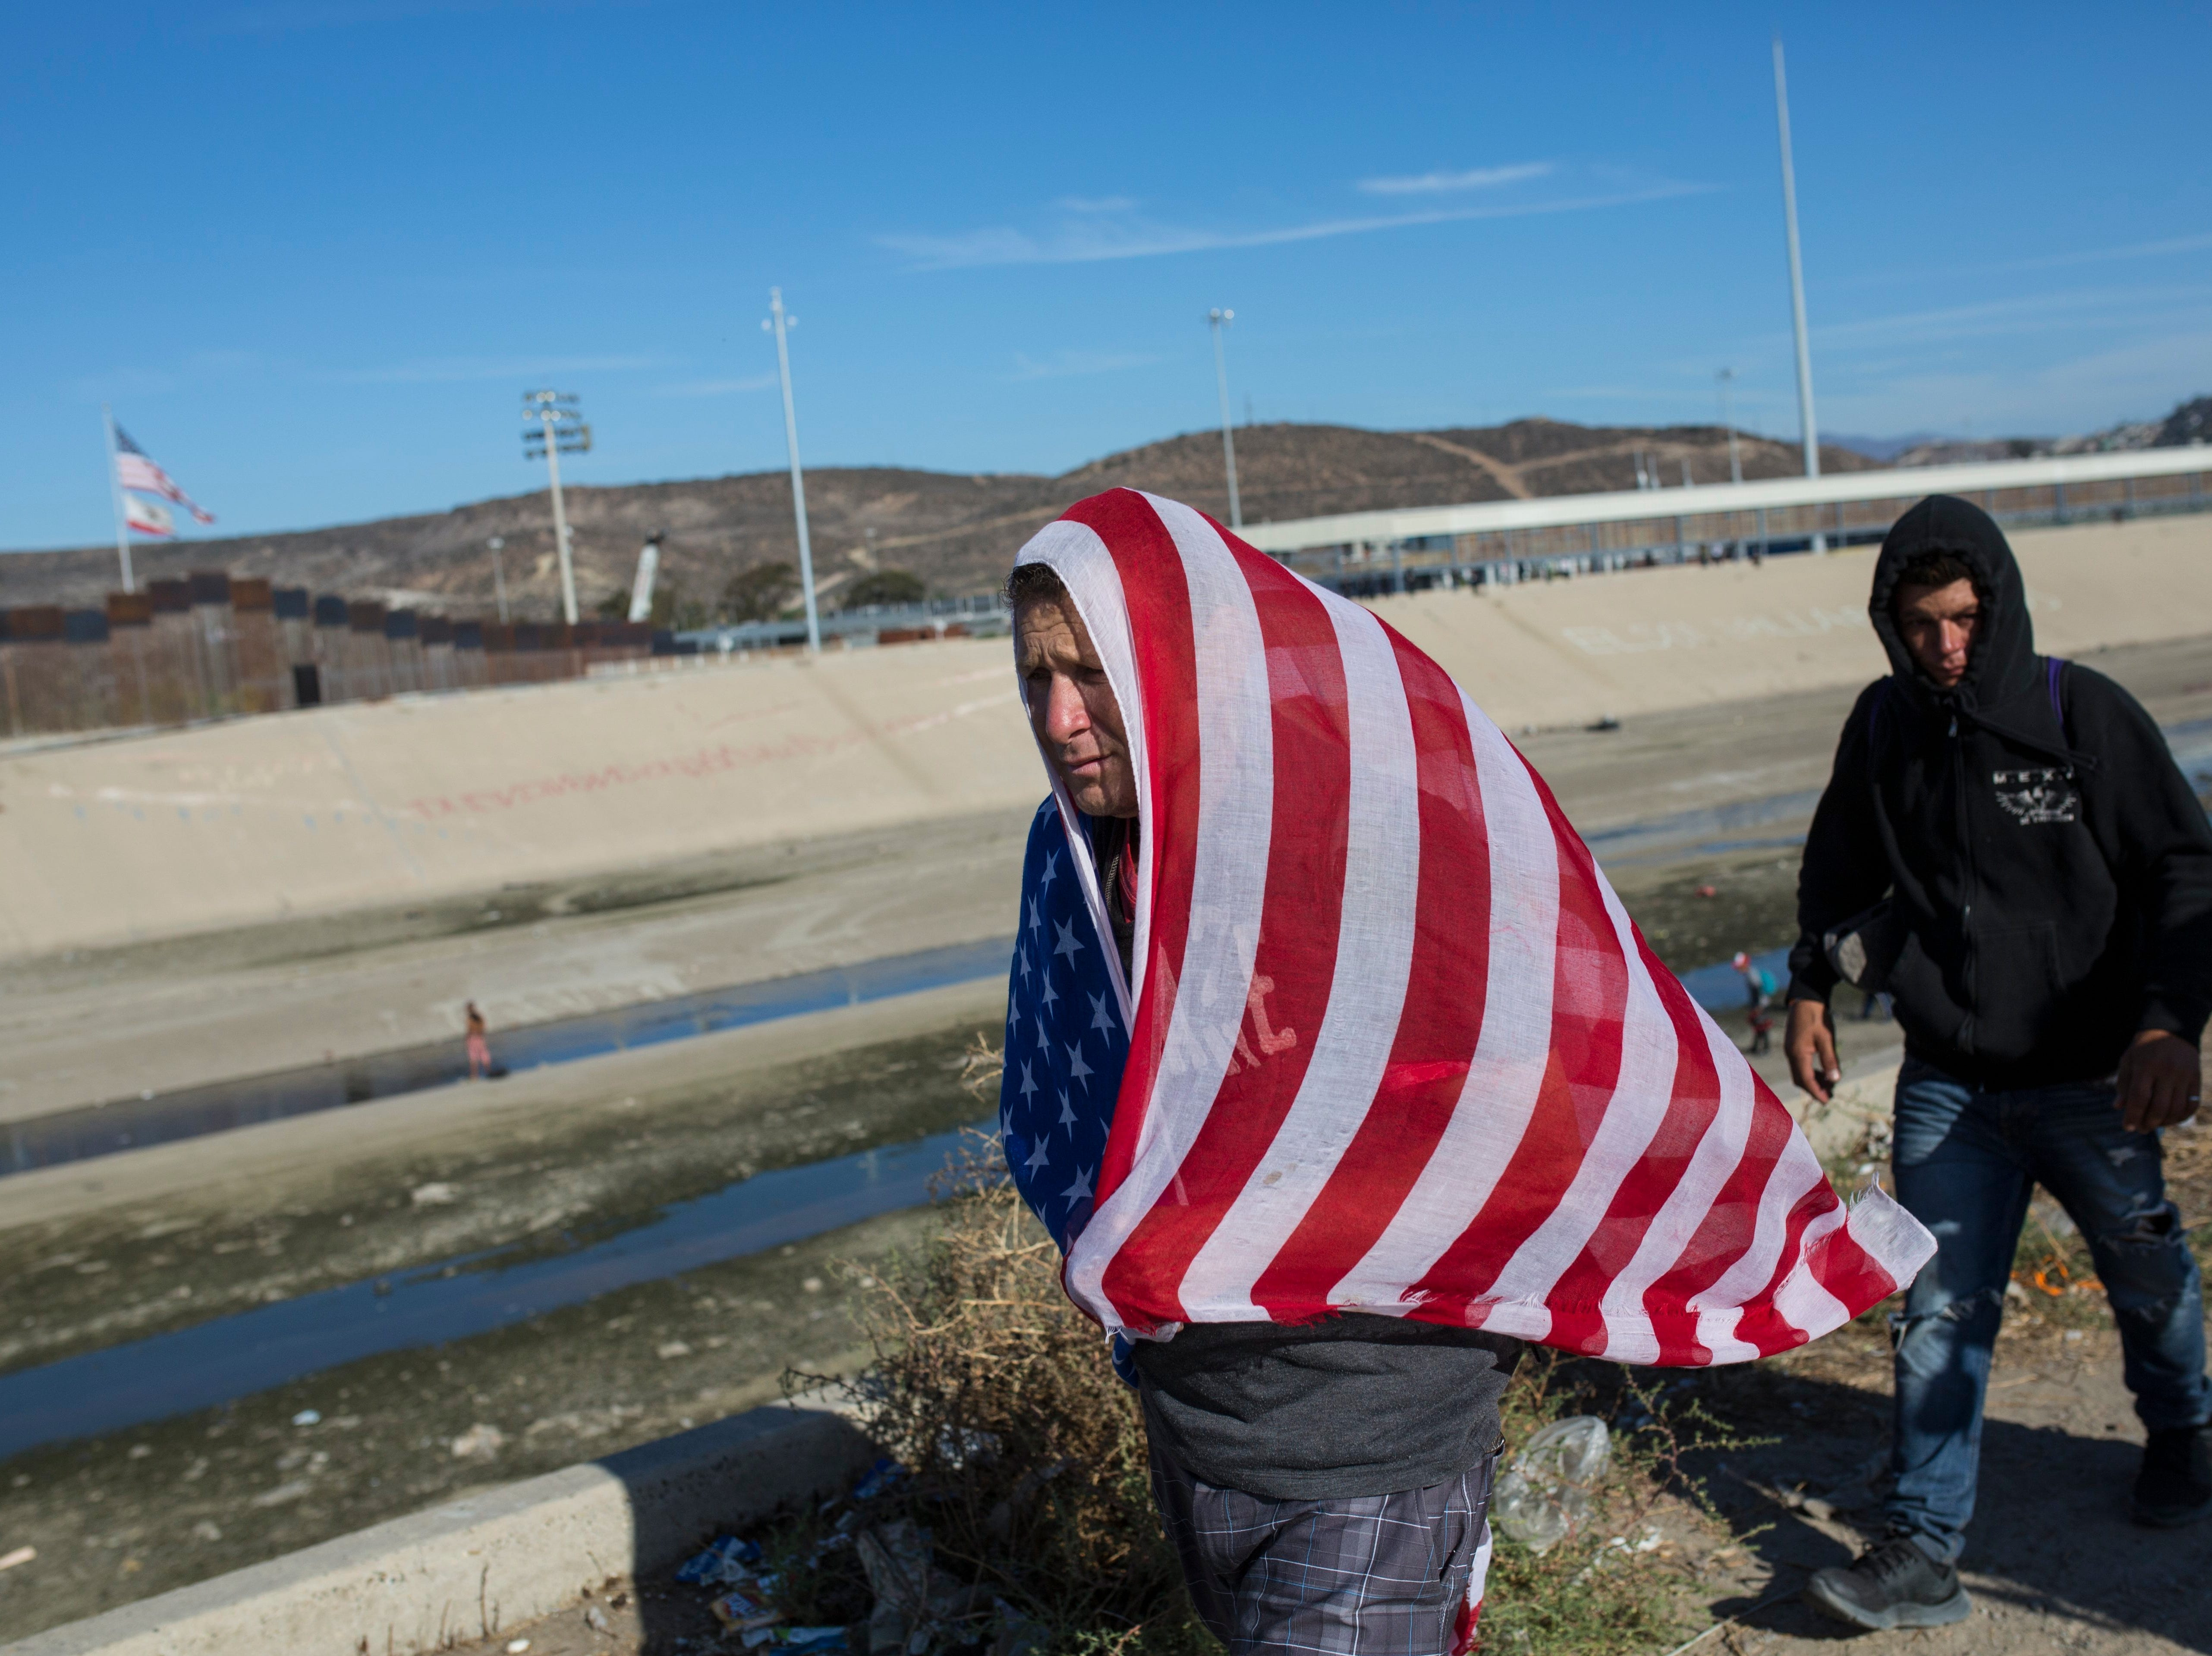 A migrant wearing a U.S. flag walks along the Mexico-U.S. border in Tijuana, Mexico, Nov. 25, 2018. The mayor of Tijuana has declared a humanitarian crisis in his border city and says that he has asked the United Nations for aid to deal with the approximately 5,000 Central American migrants who have arrived in the city. (AP Photo/Rodrigo Abd)